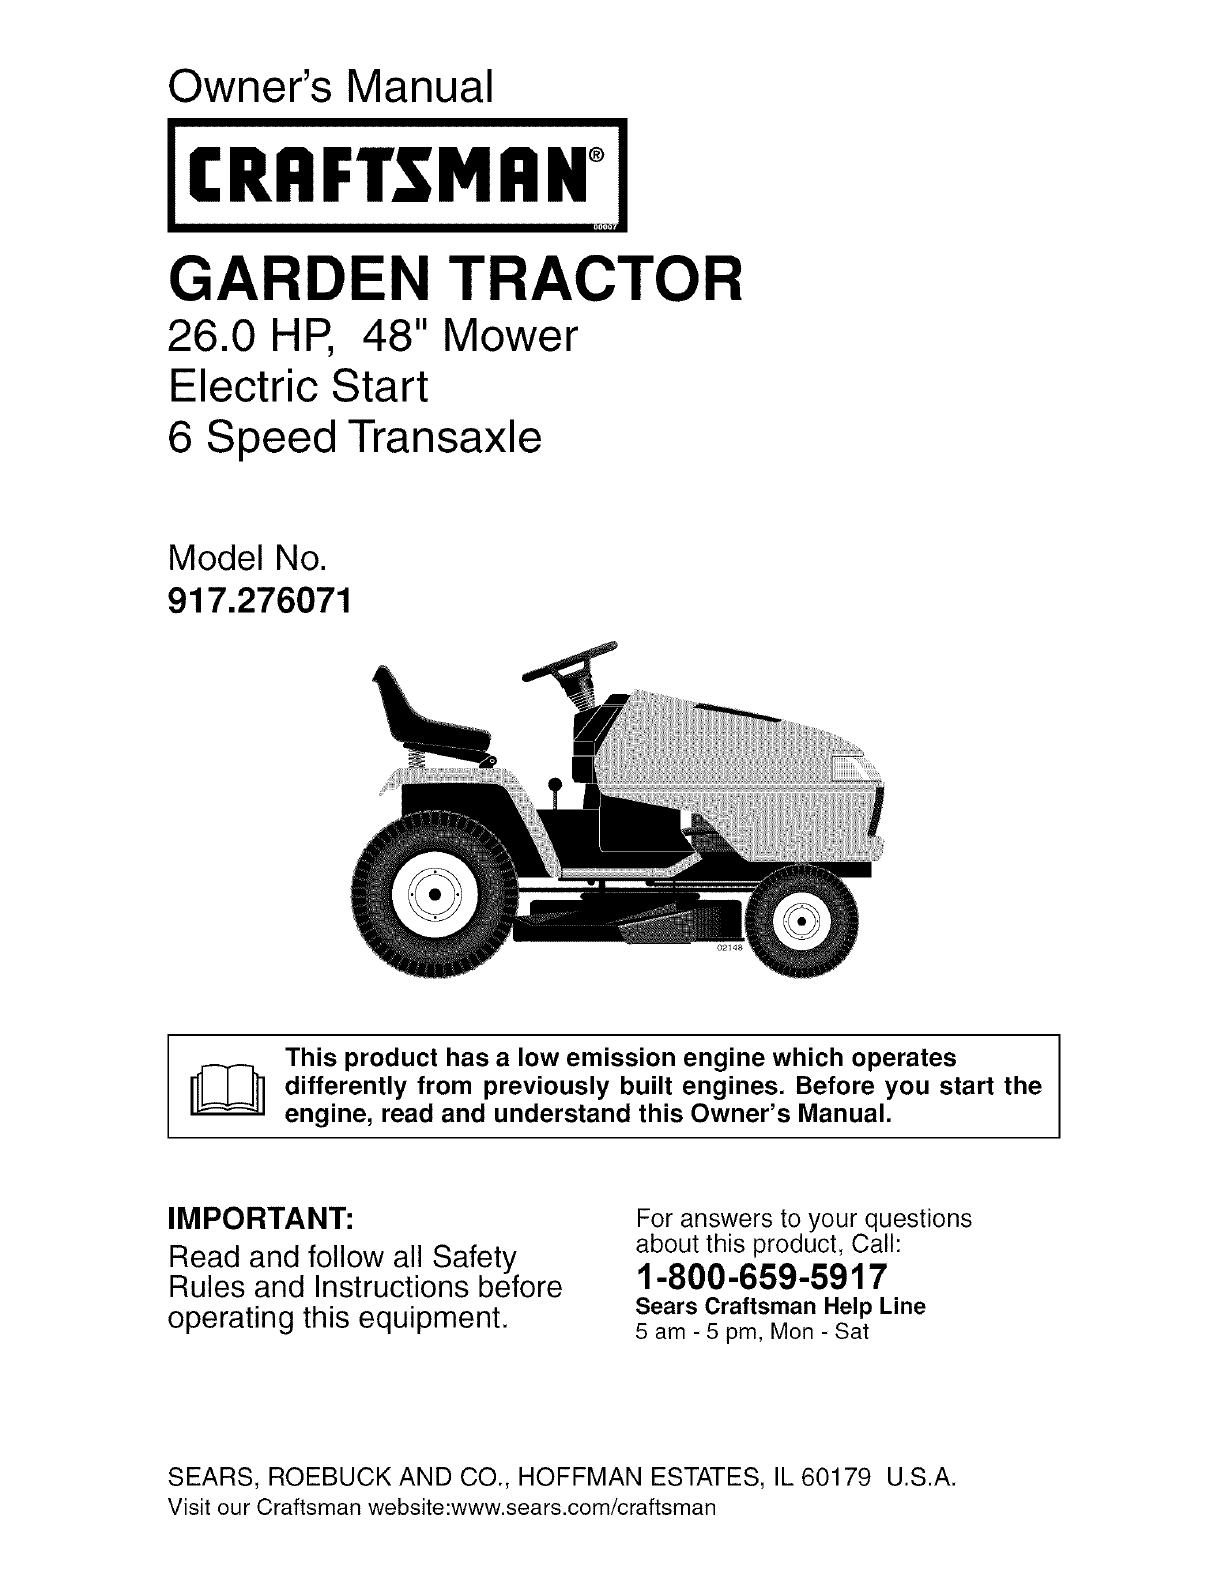 Craftsman 917276071 User Manual Tractor Manuals And Guides L0606005 Lawn Mower Electrical Schematics